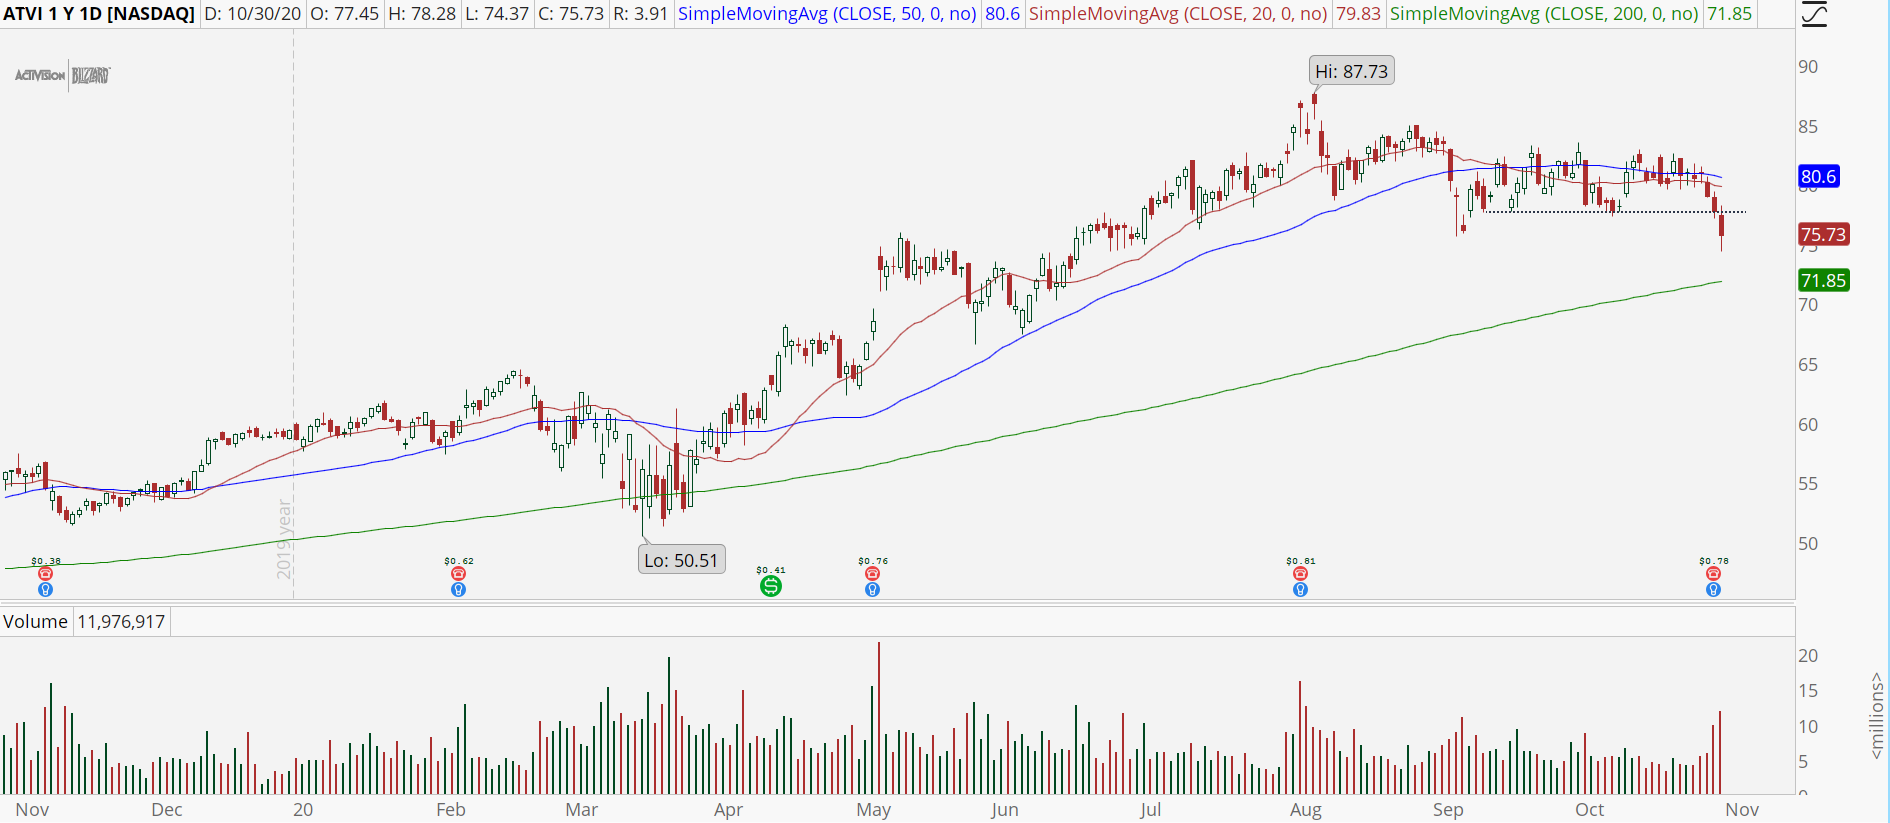 Activision (ATVI) daily chart with support break